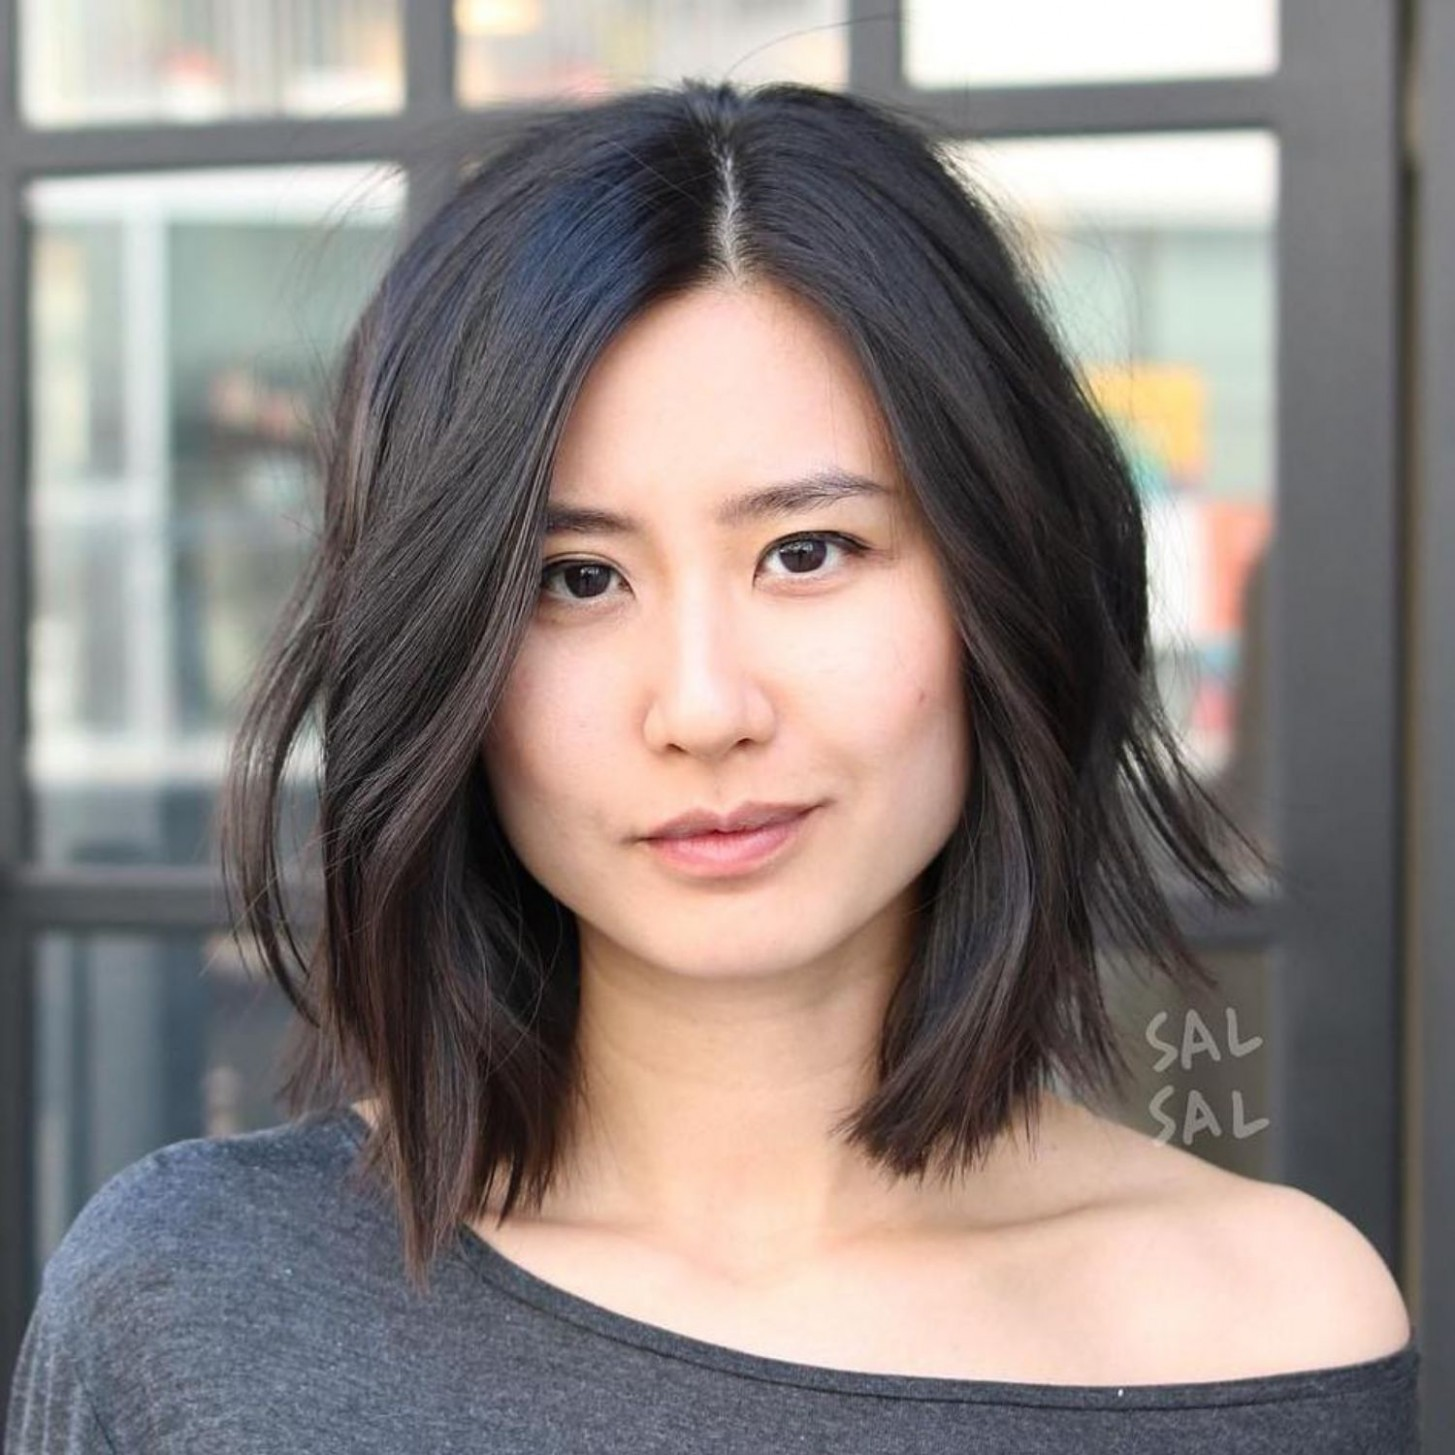 12 Best Hairstyles For Square Faces Rounding The Angles Haircut Bob For Square Face